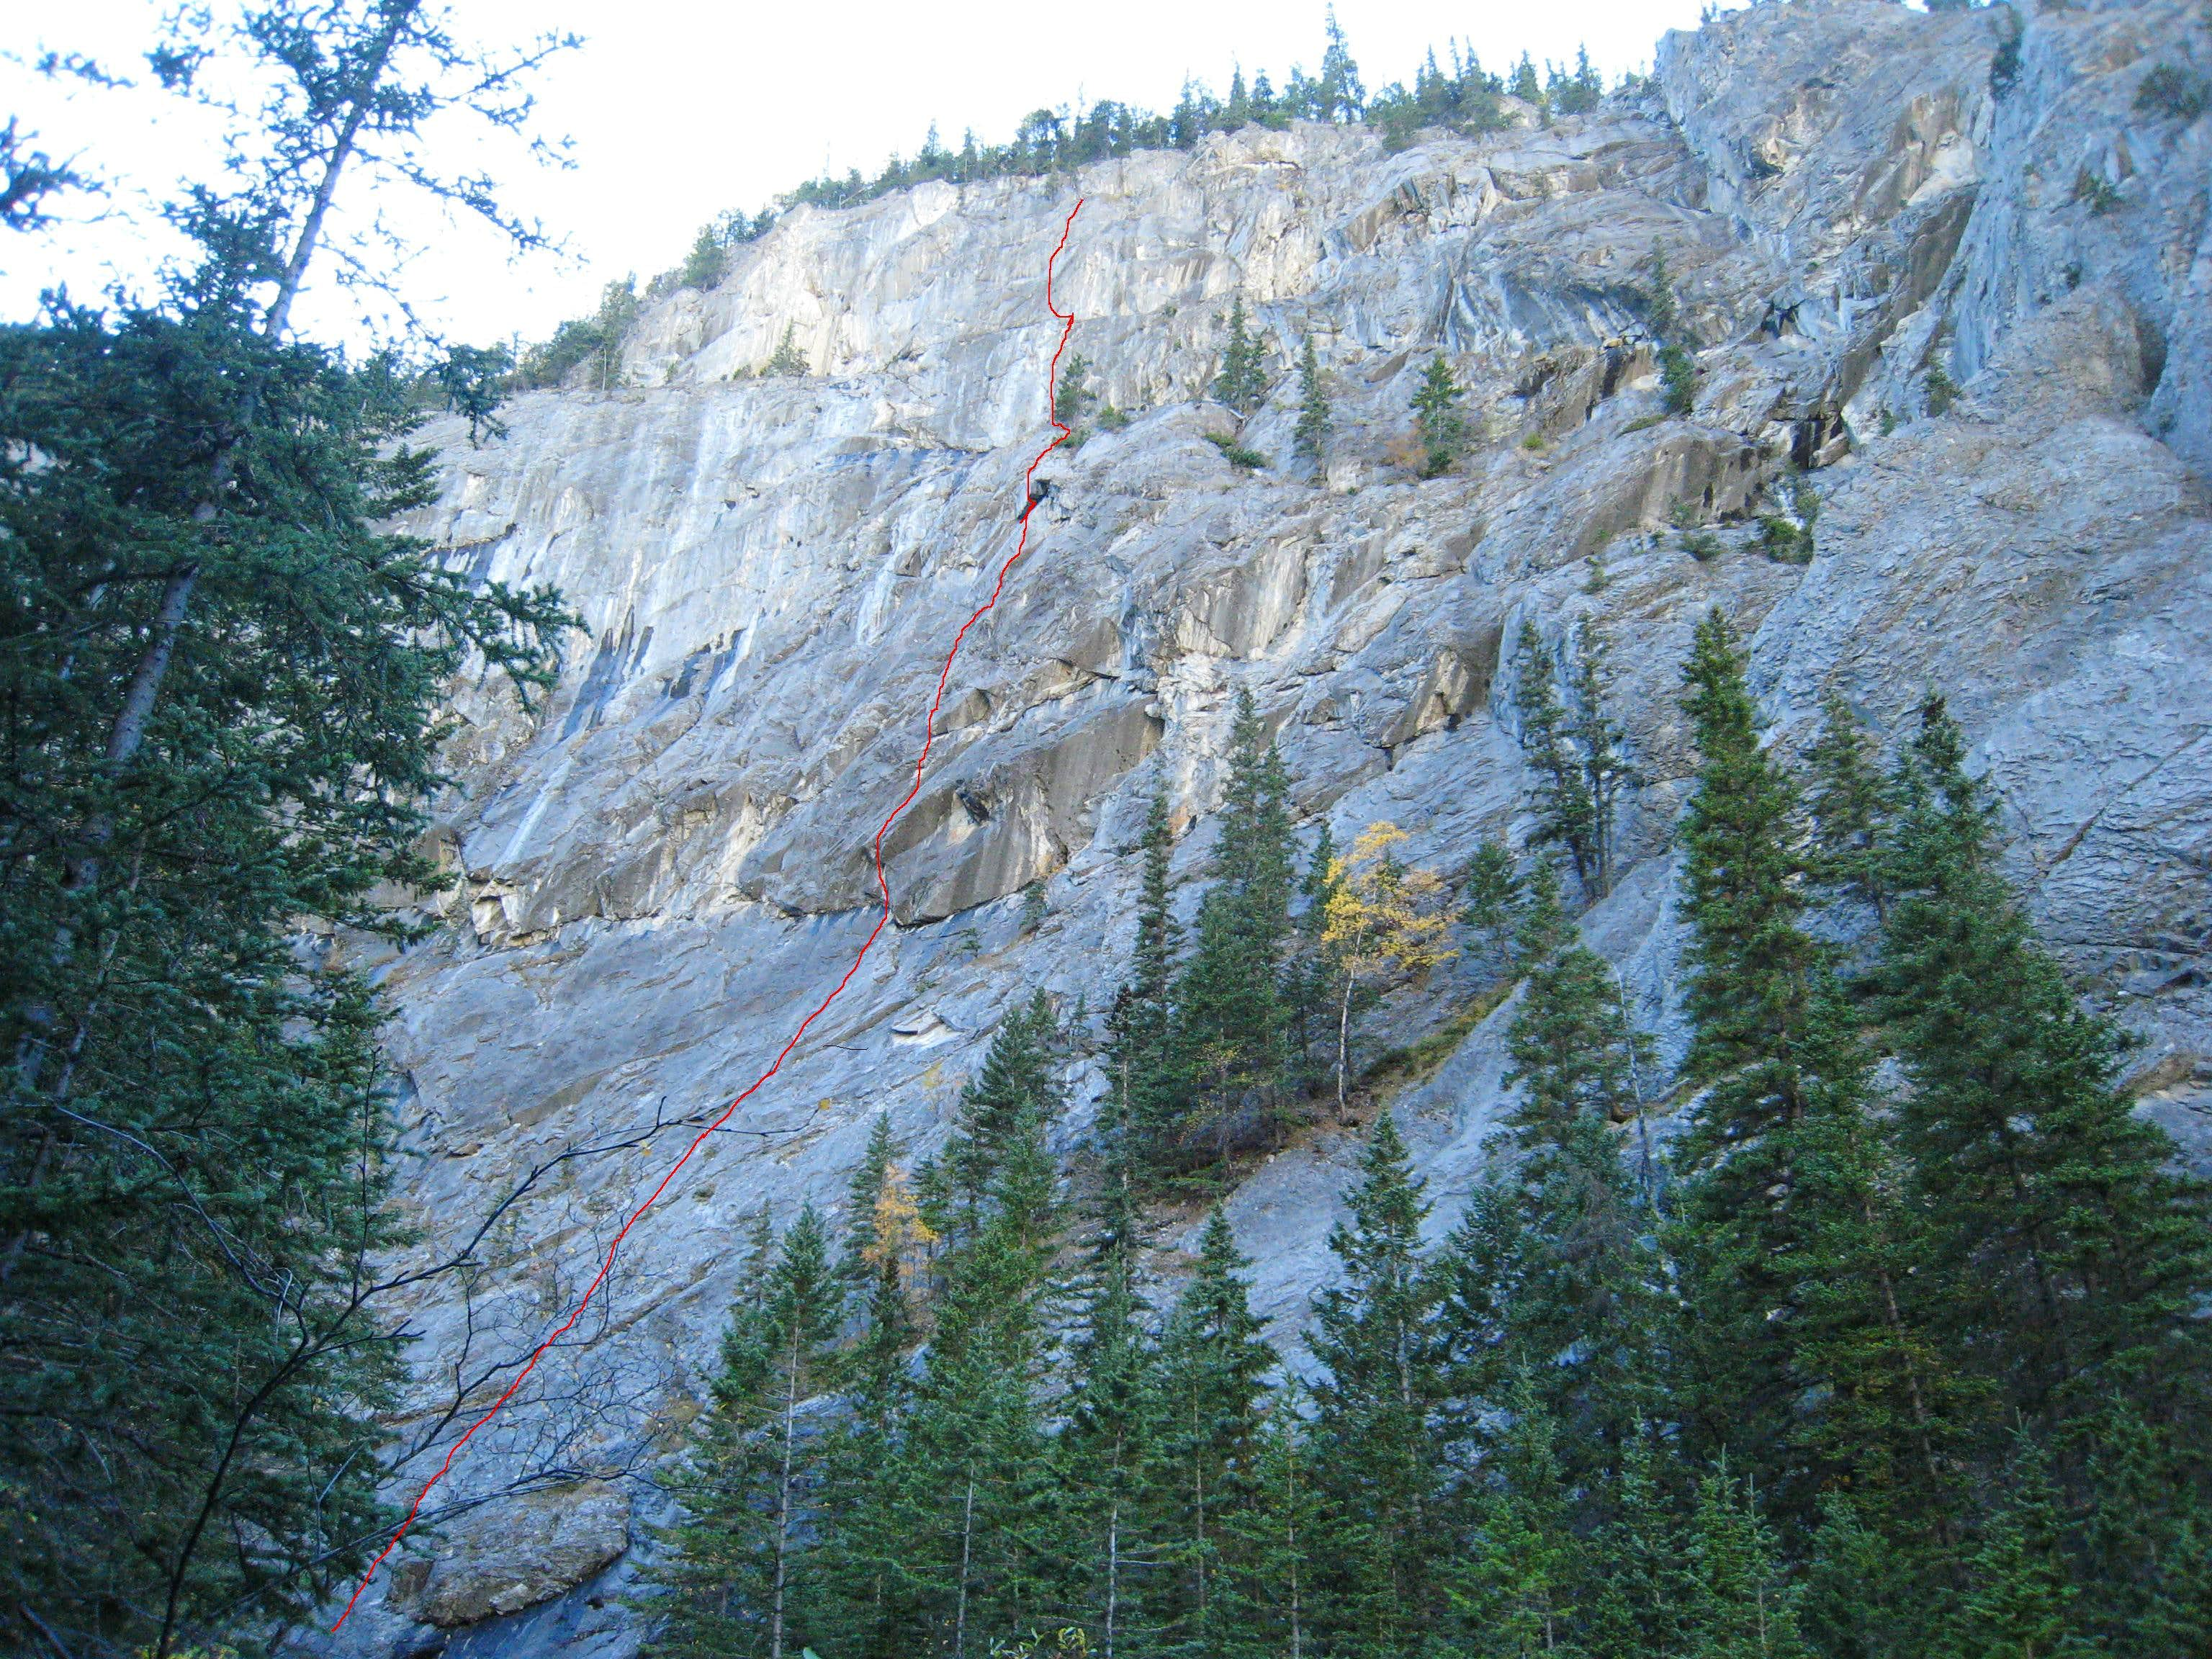 Sciatica - 5.10d, 6 pitches